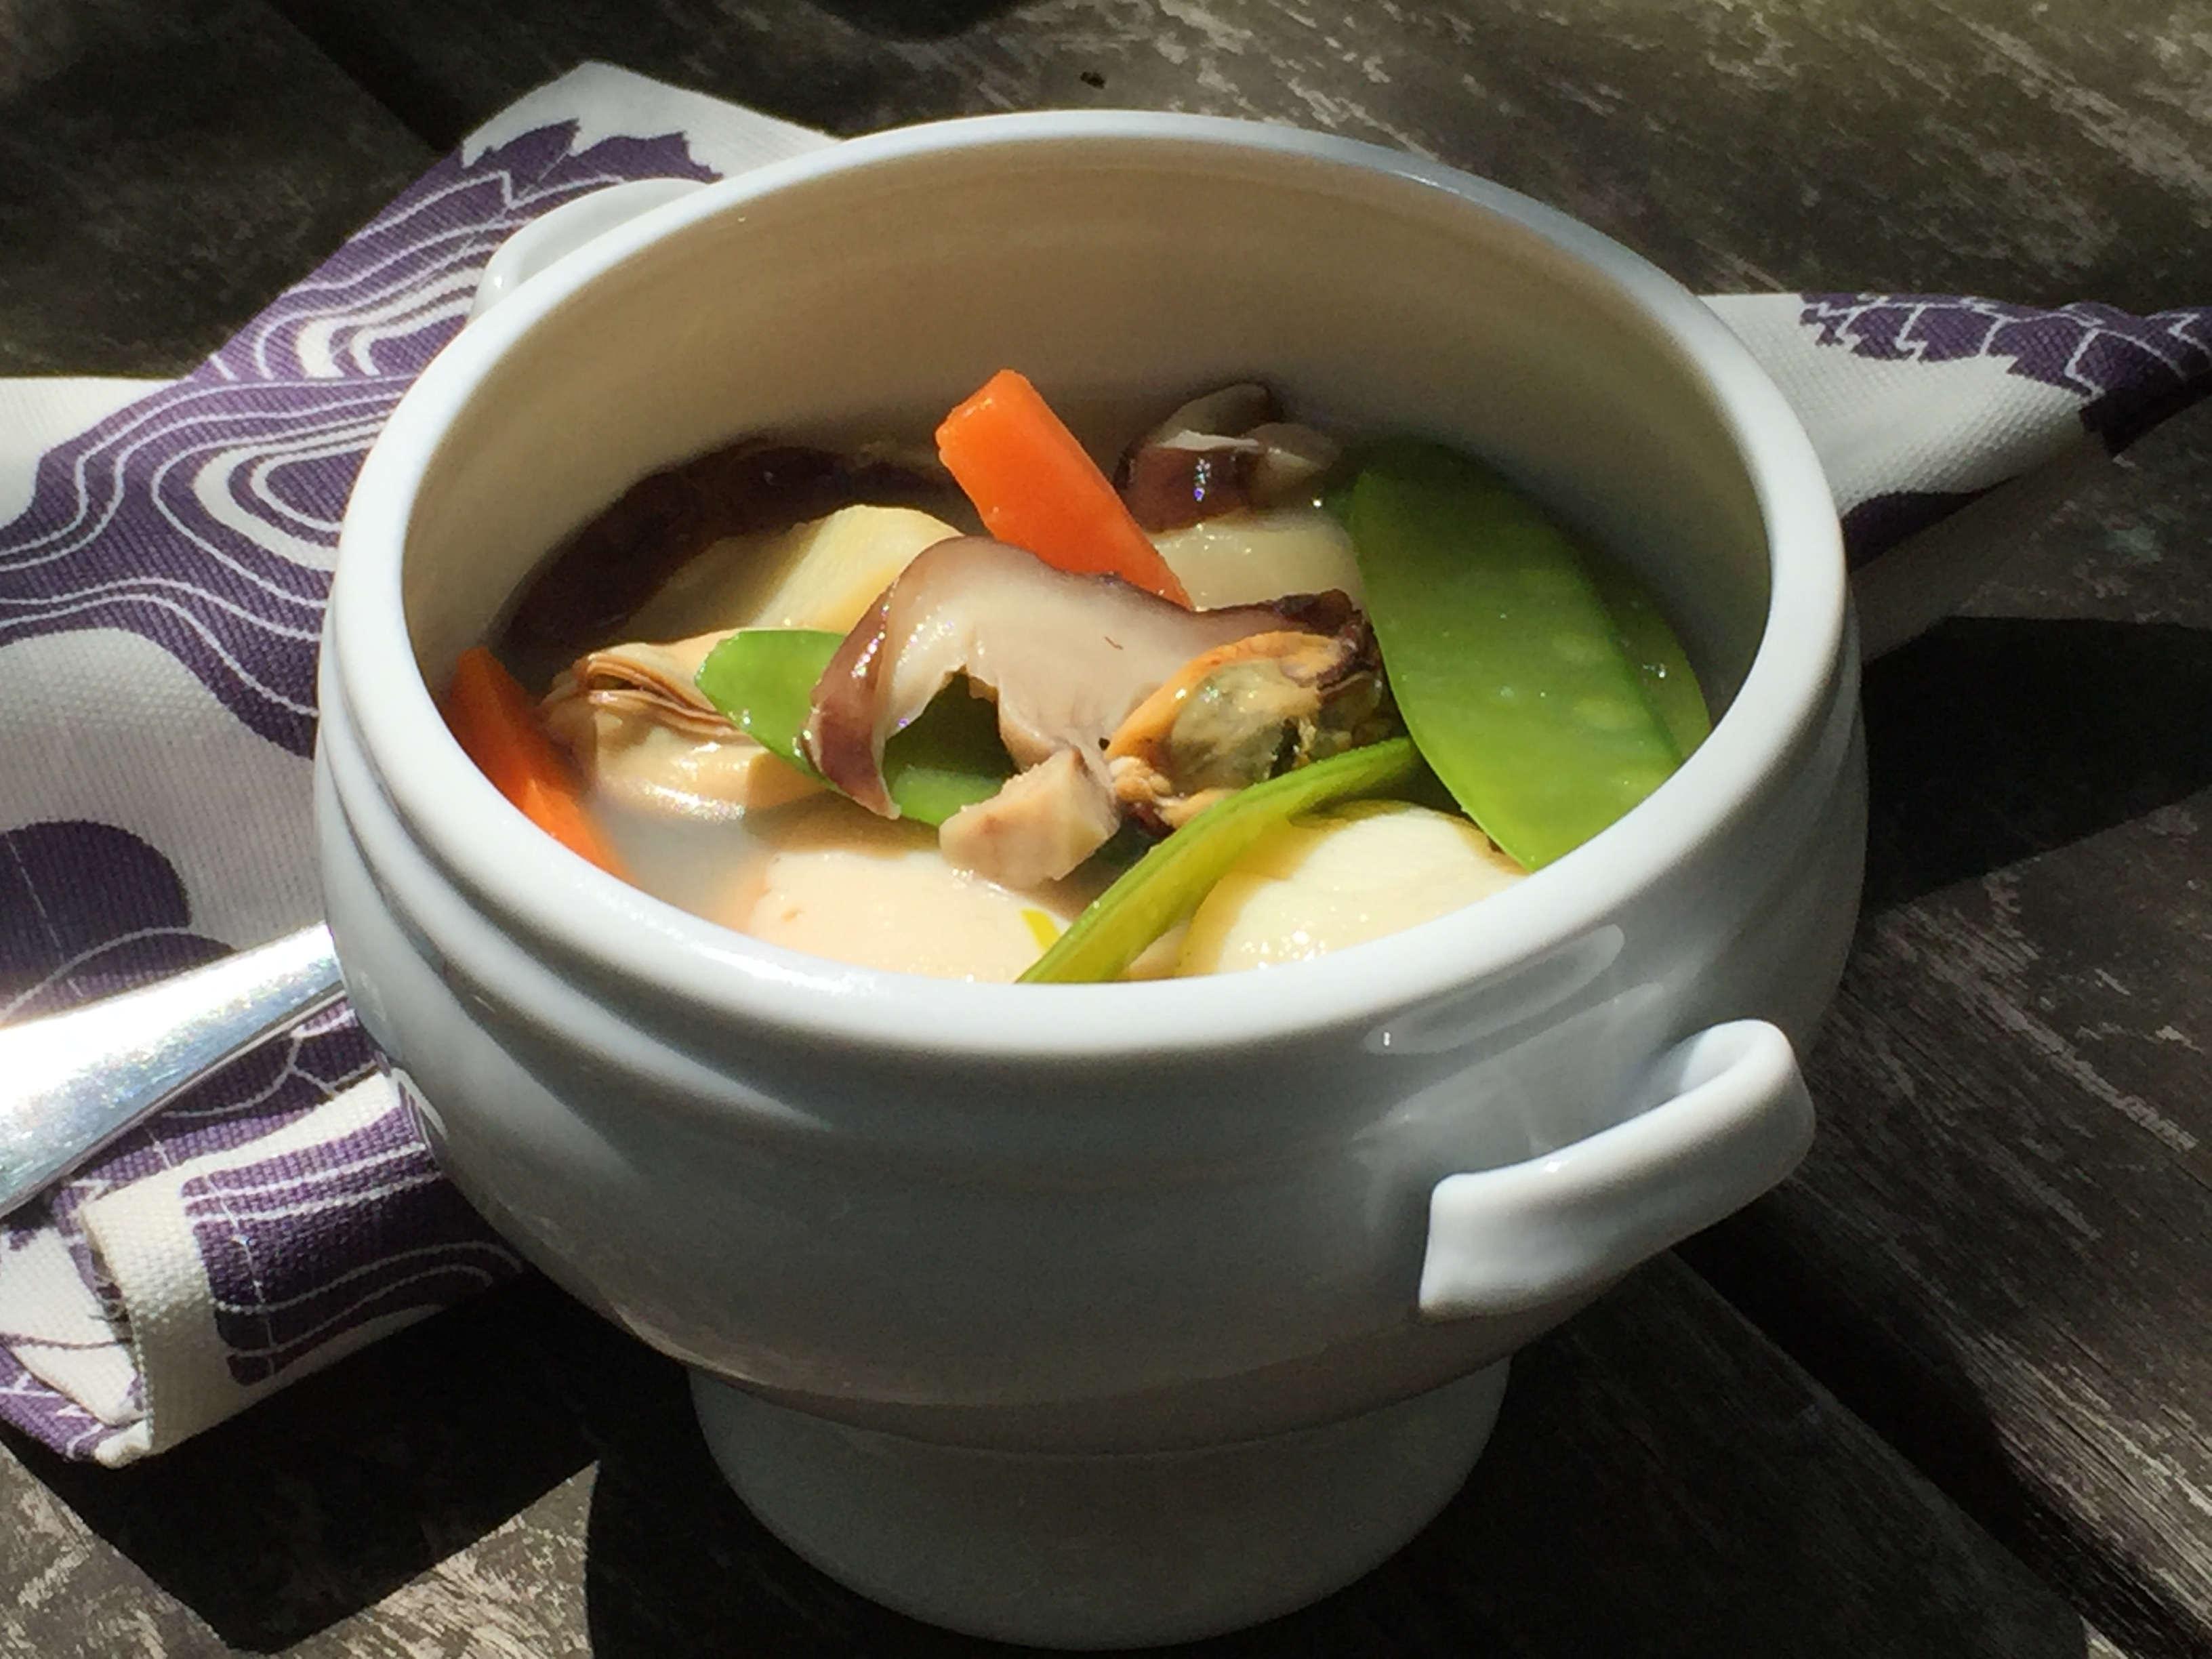 Pot au feu outside